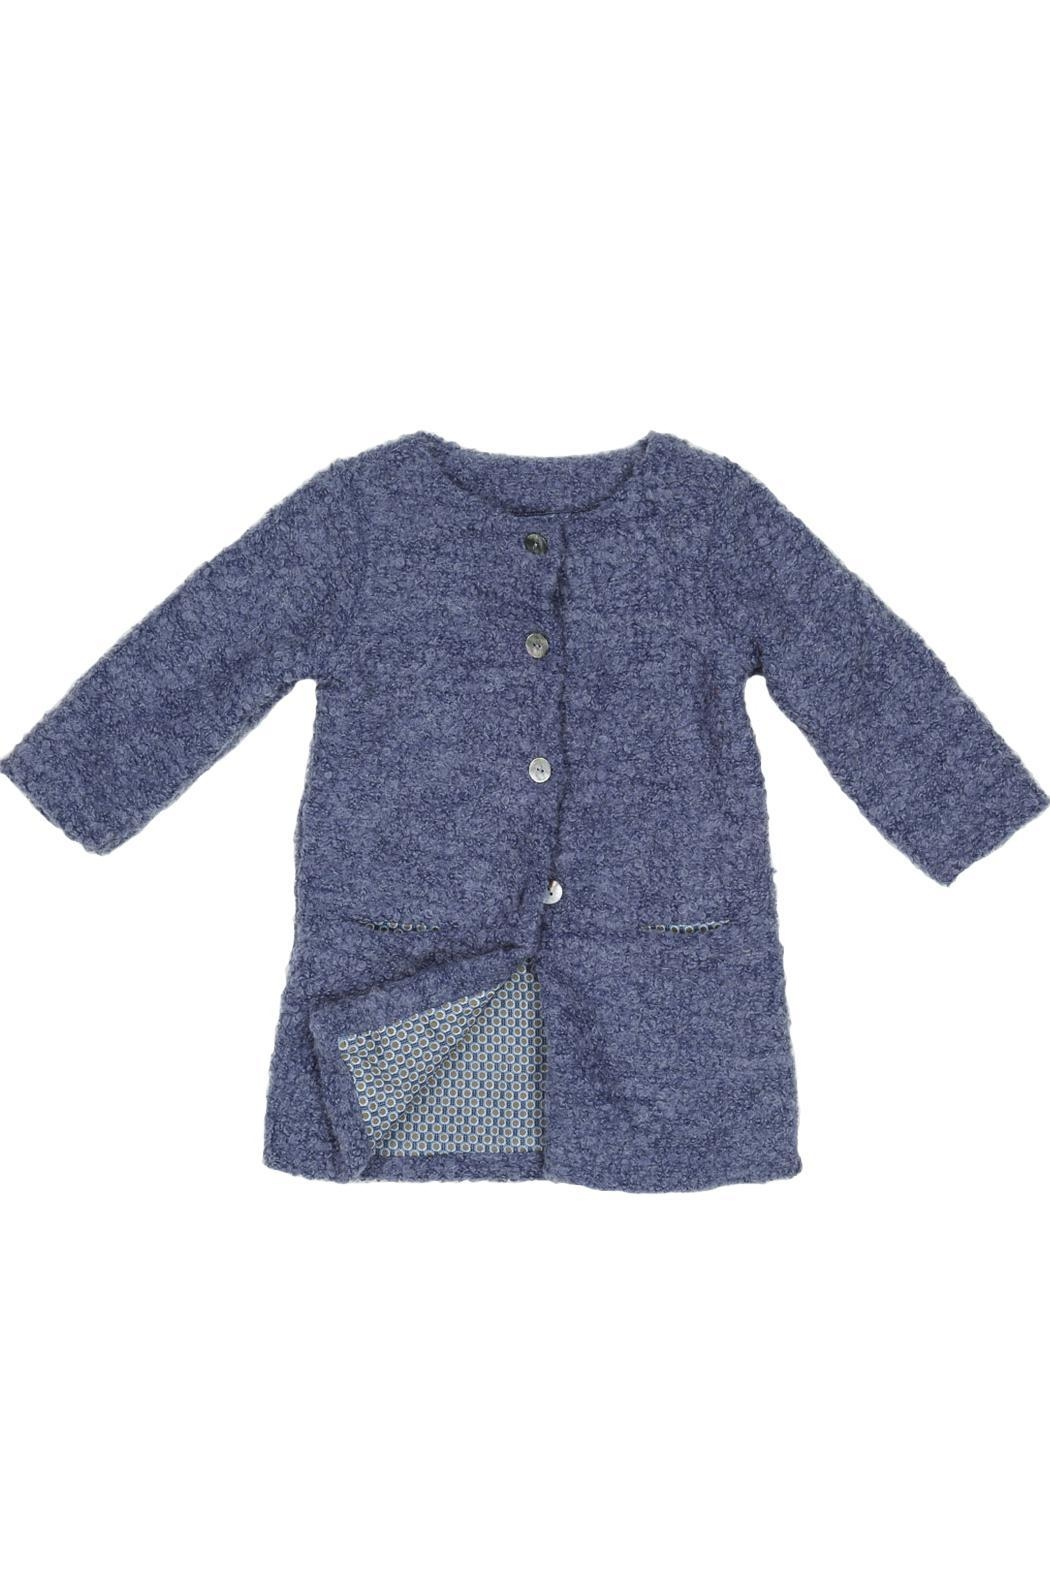 Malvi & Co. Blue Boucle Coat. - Main Image